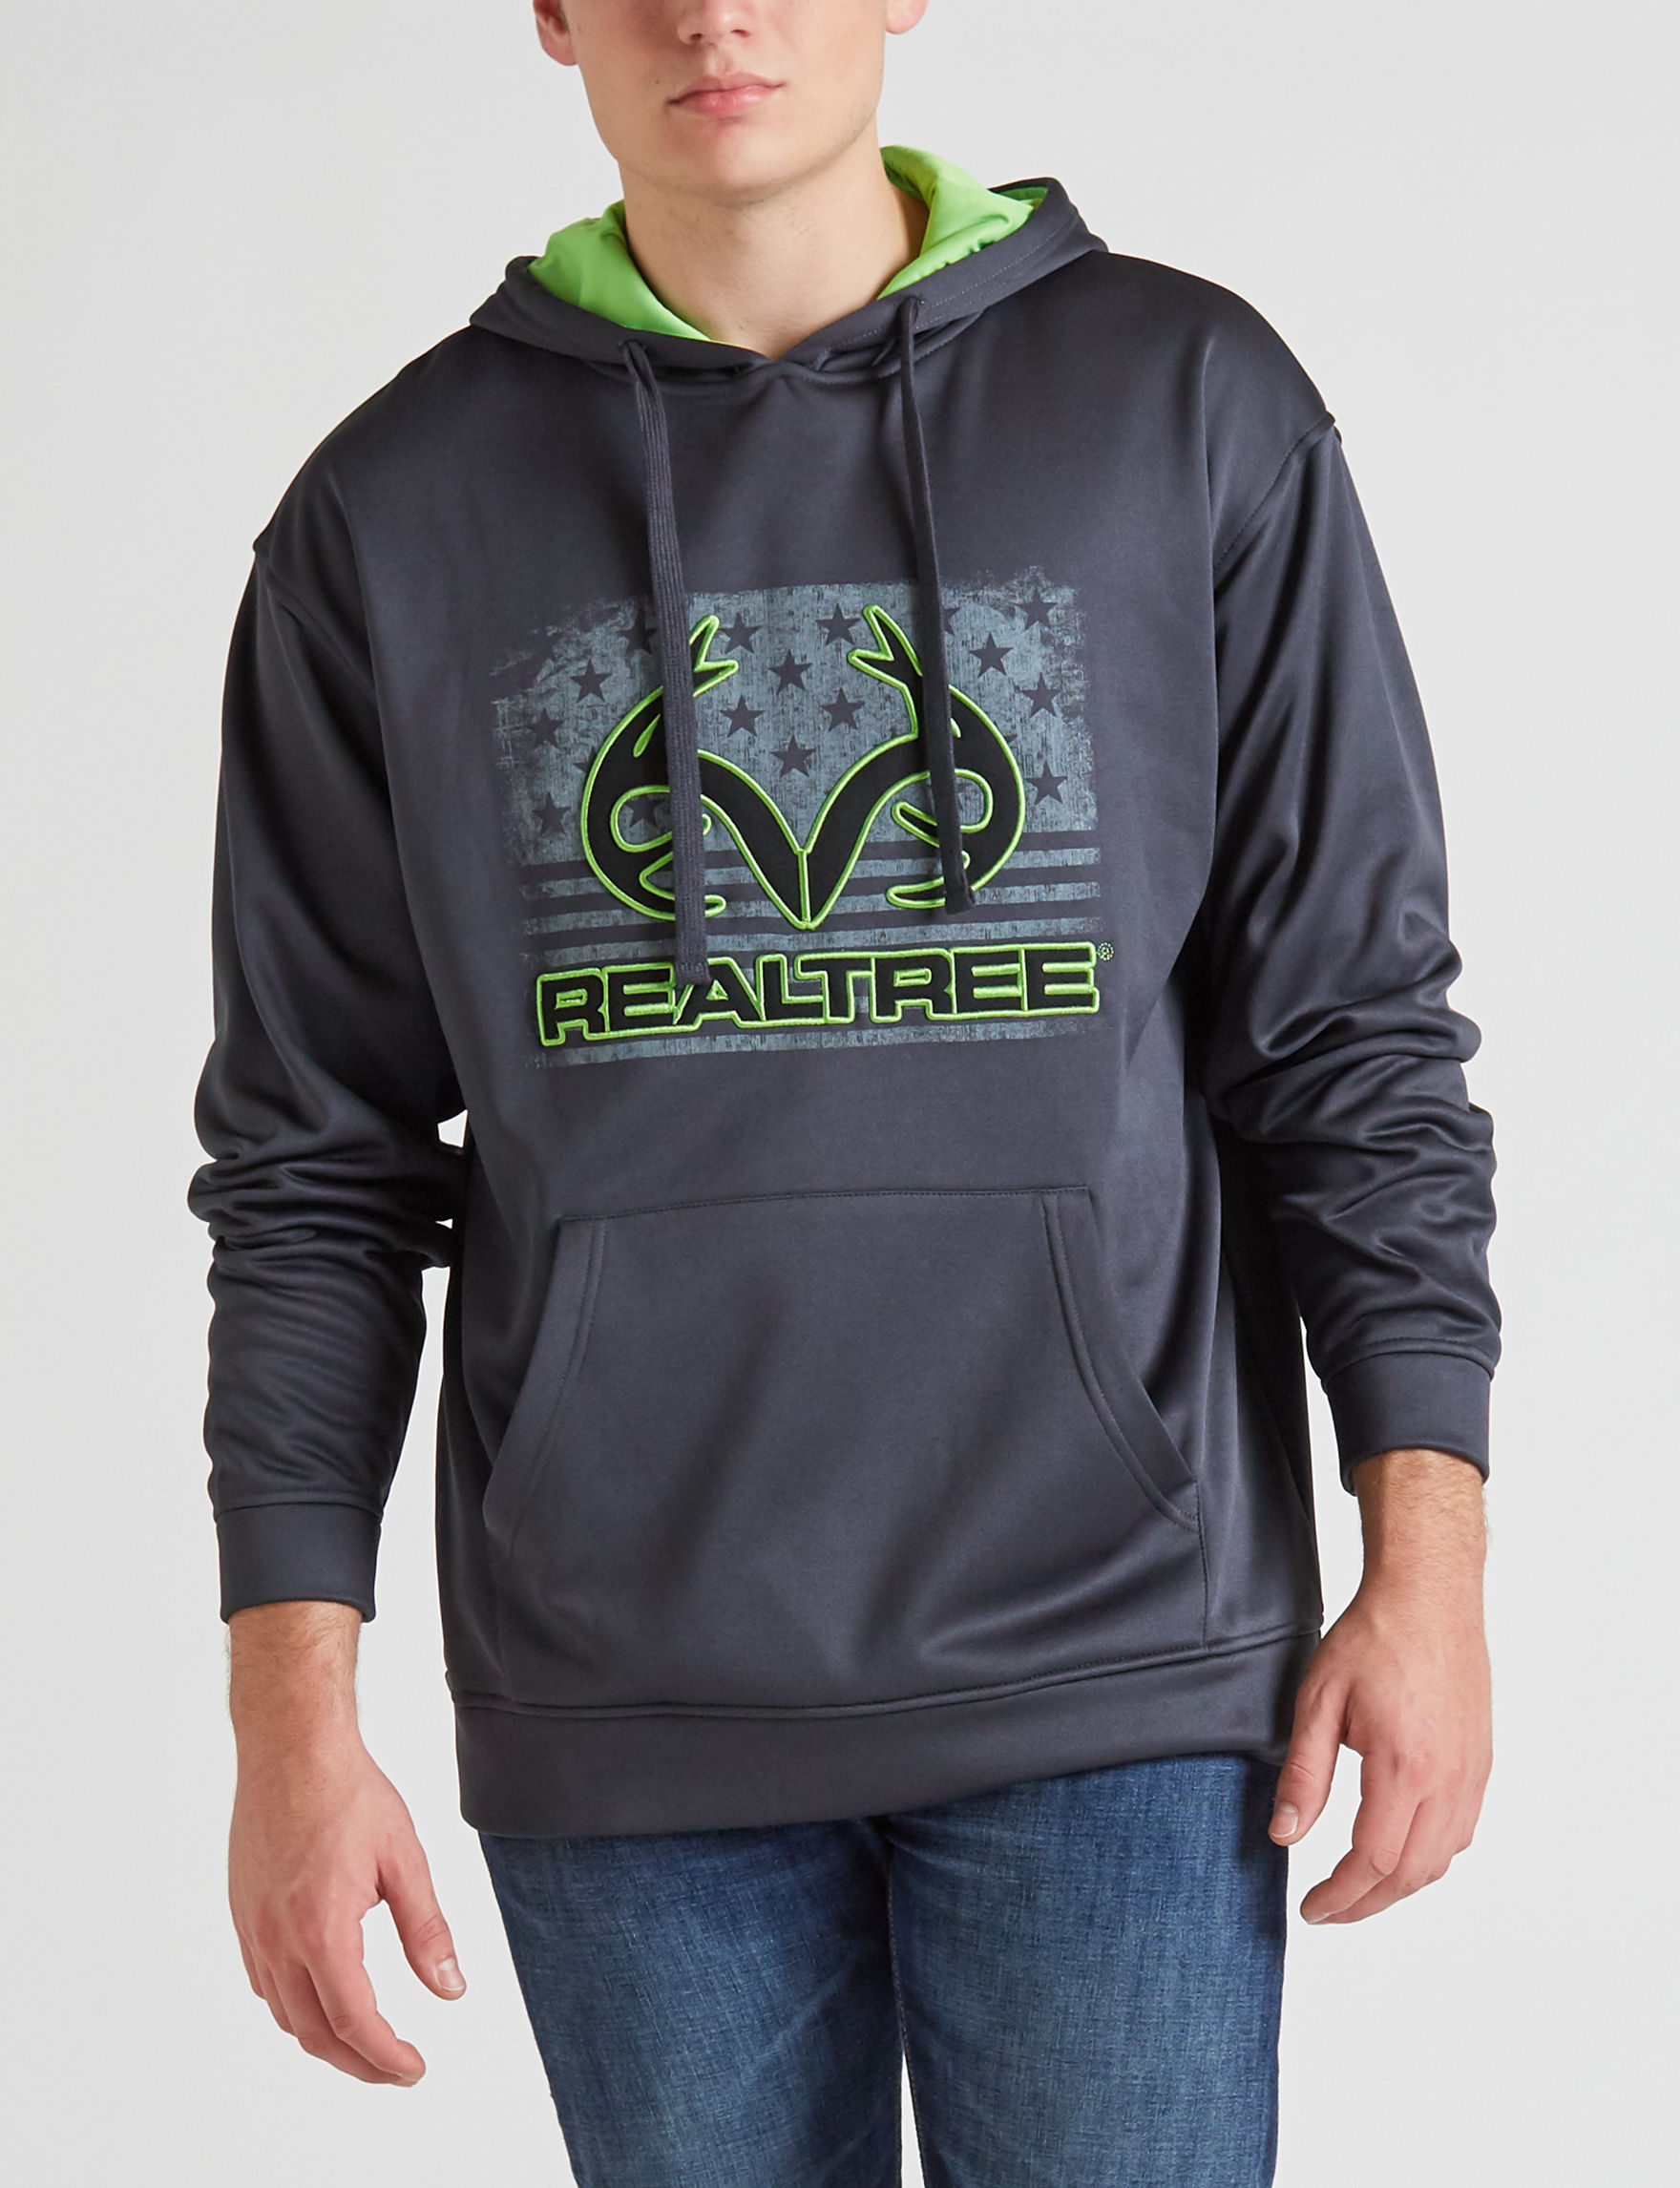 Realtree Grey / Green Pull-overs